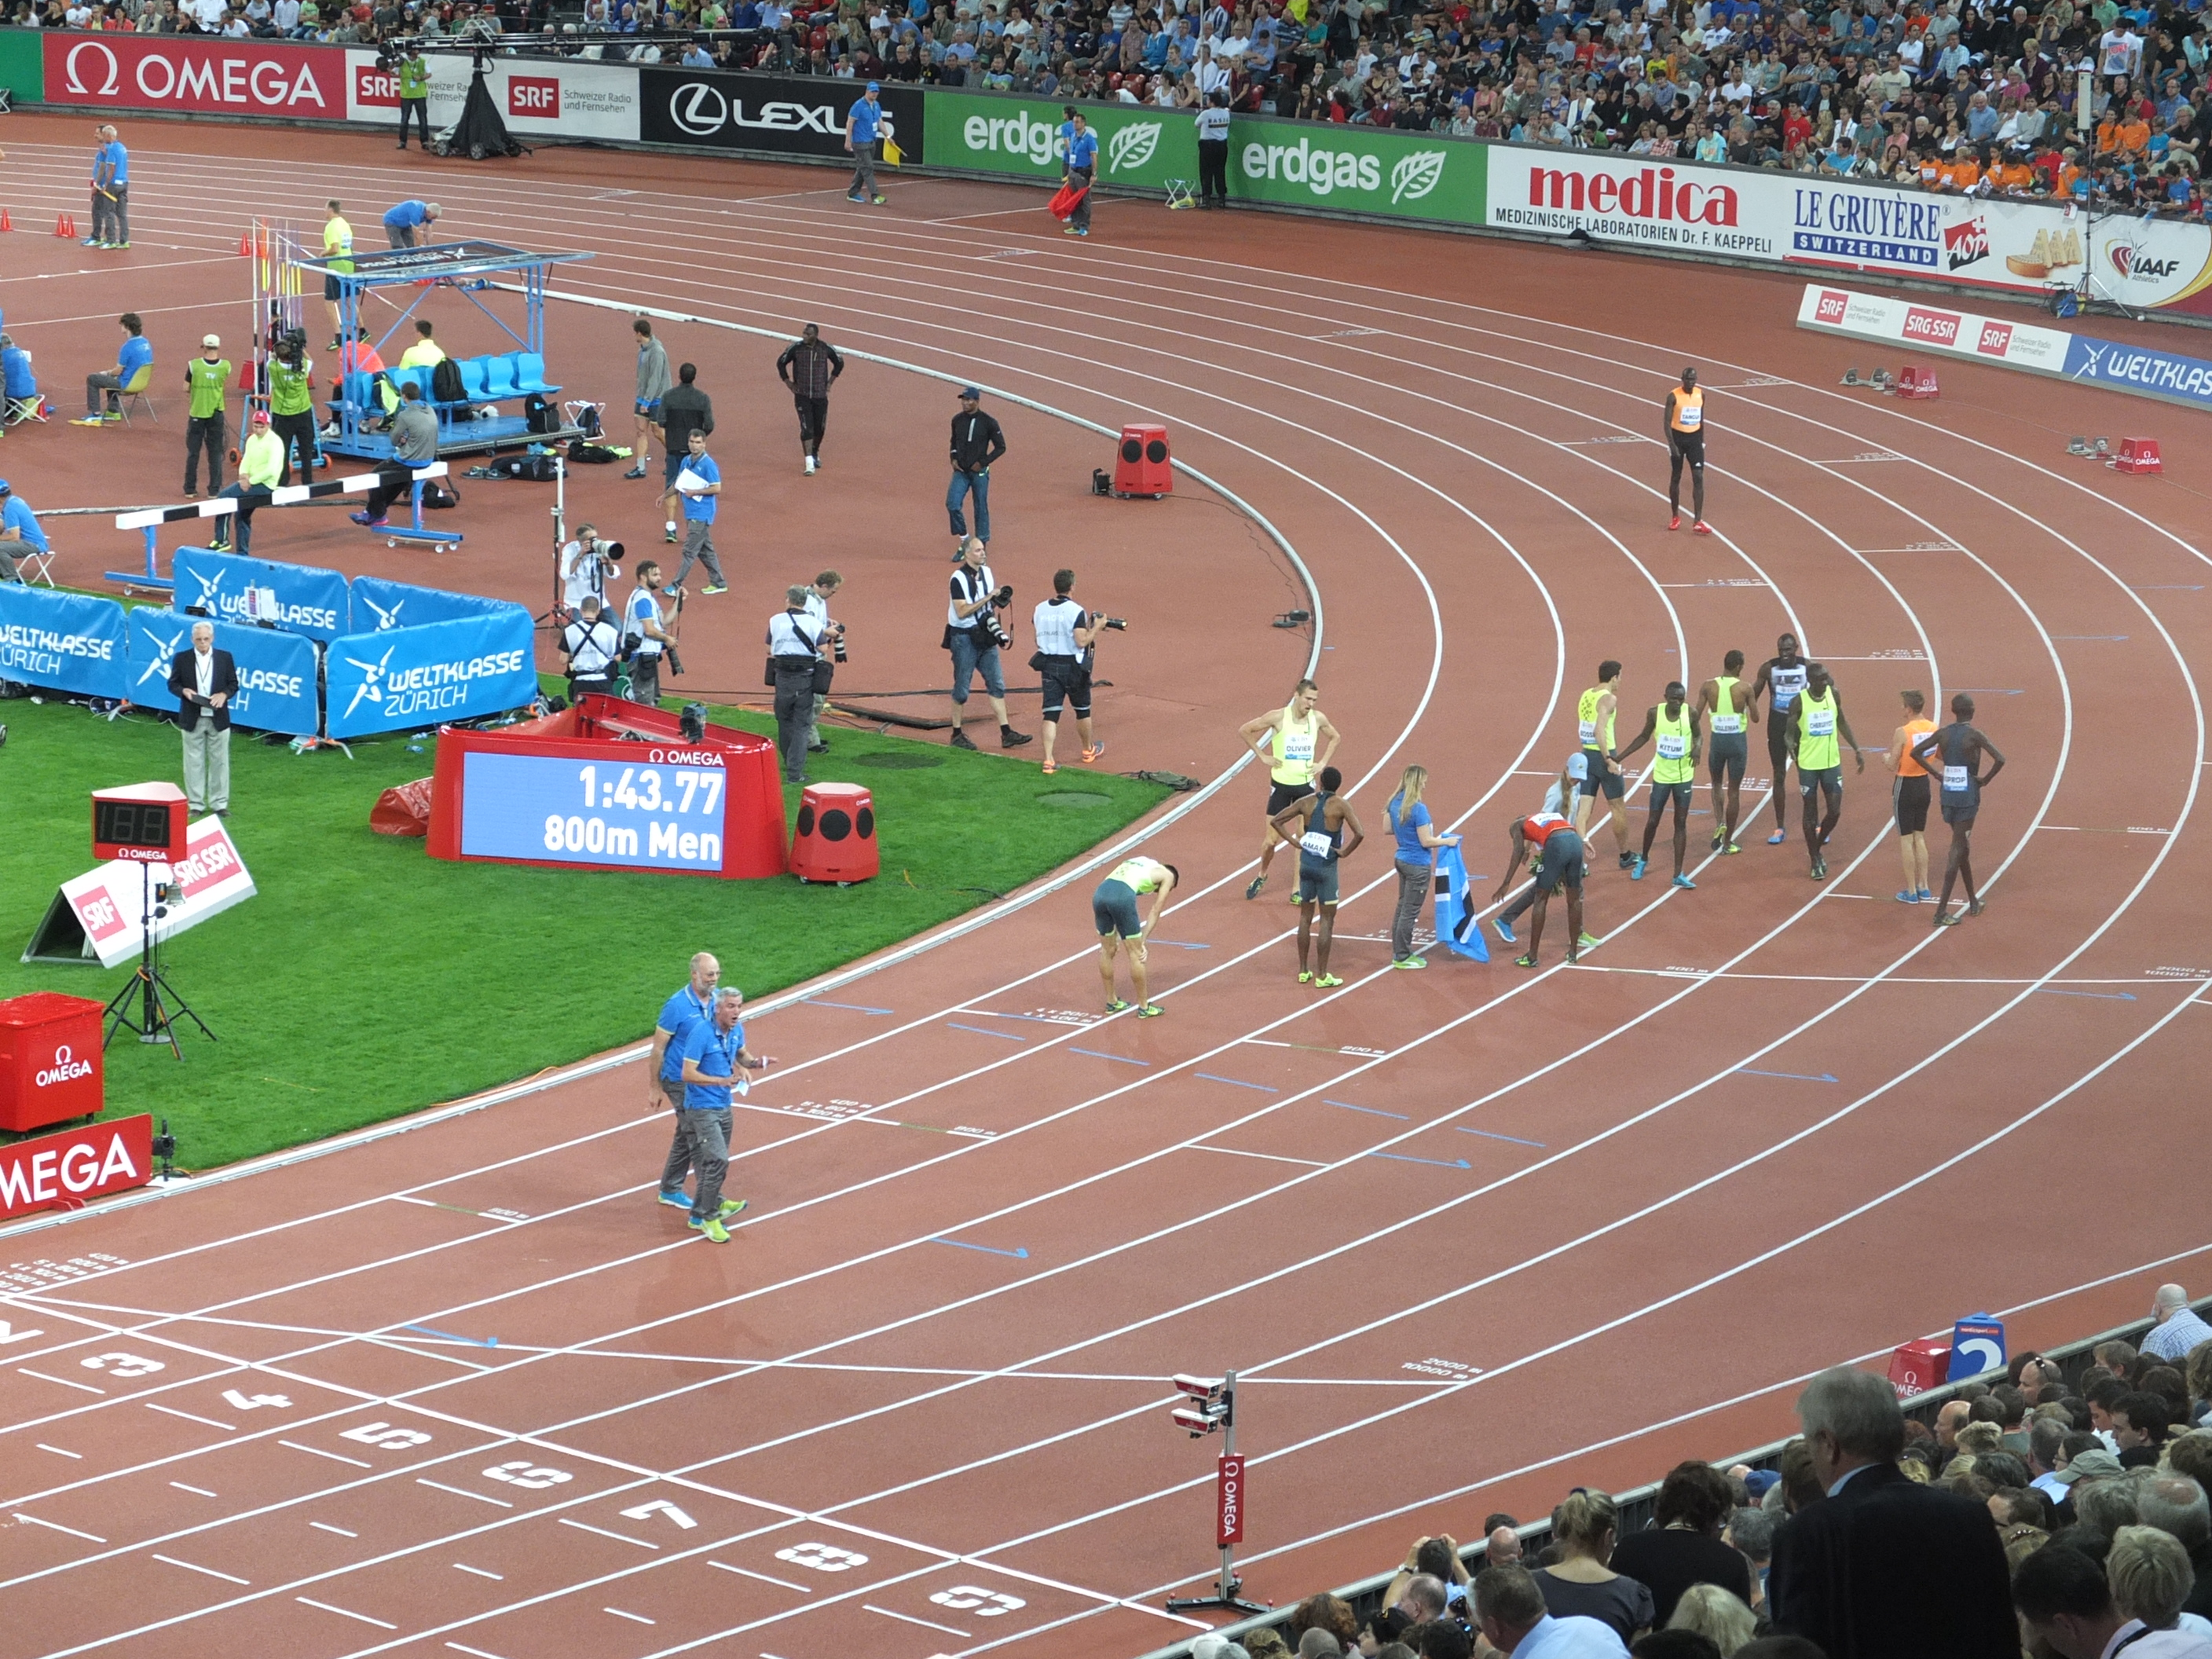 After the 800 meter race in Zurich